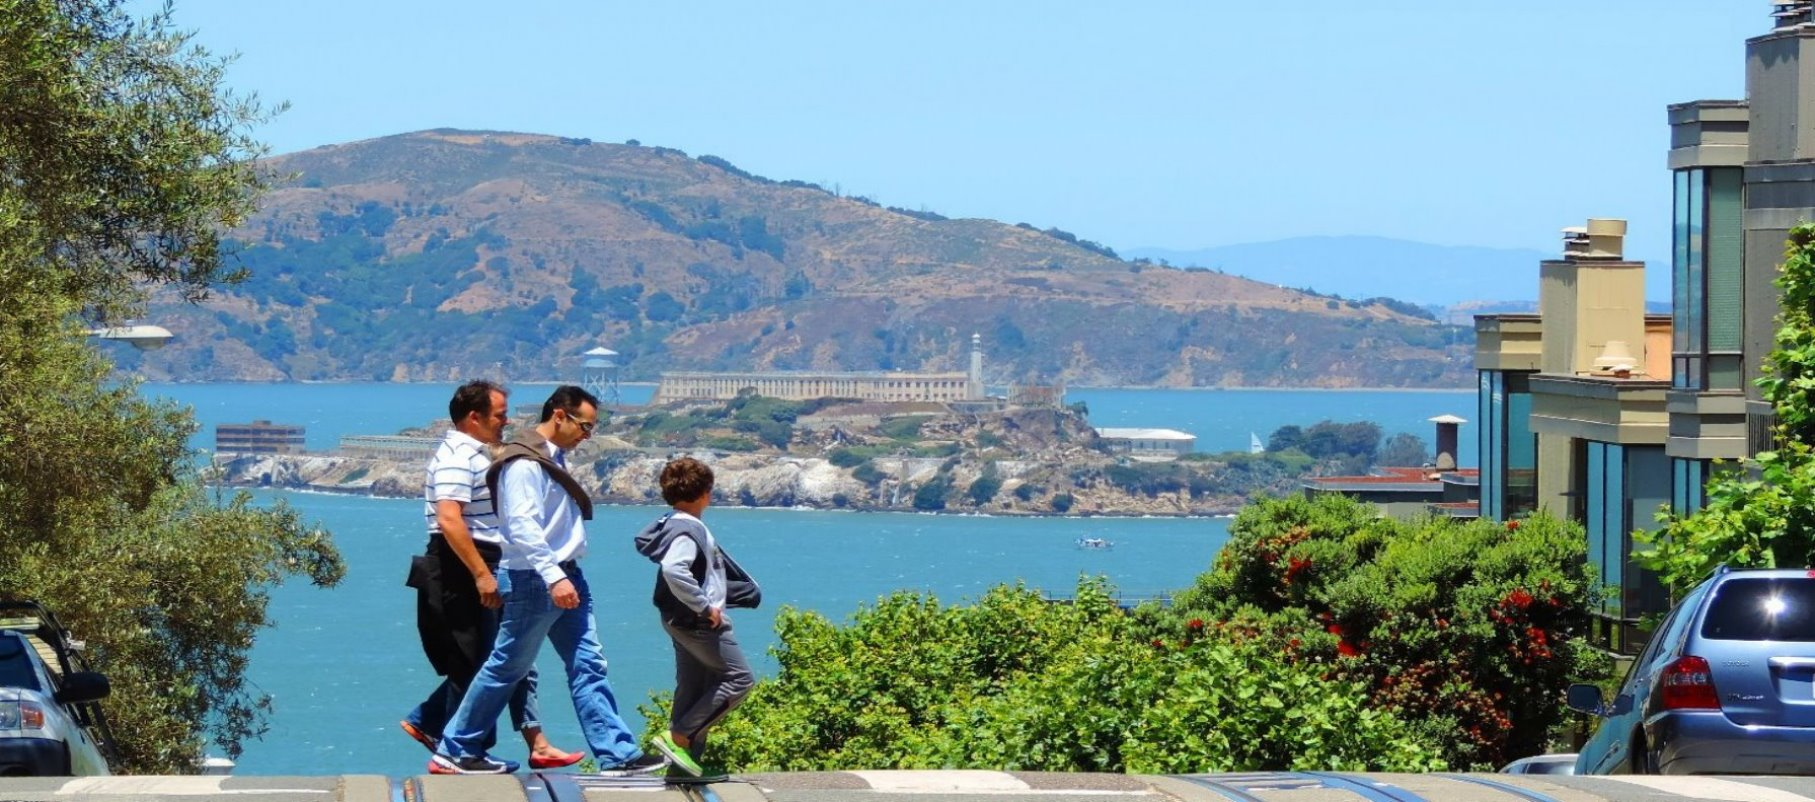 alcatraz_island_combo_day_adventure_package_with_san_francisco_city_tour